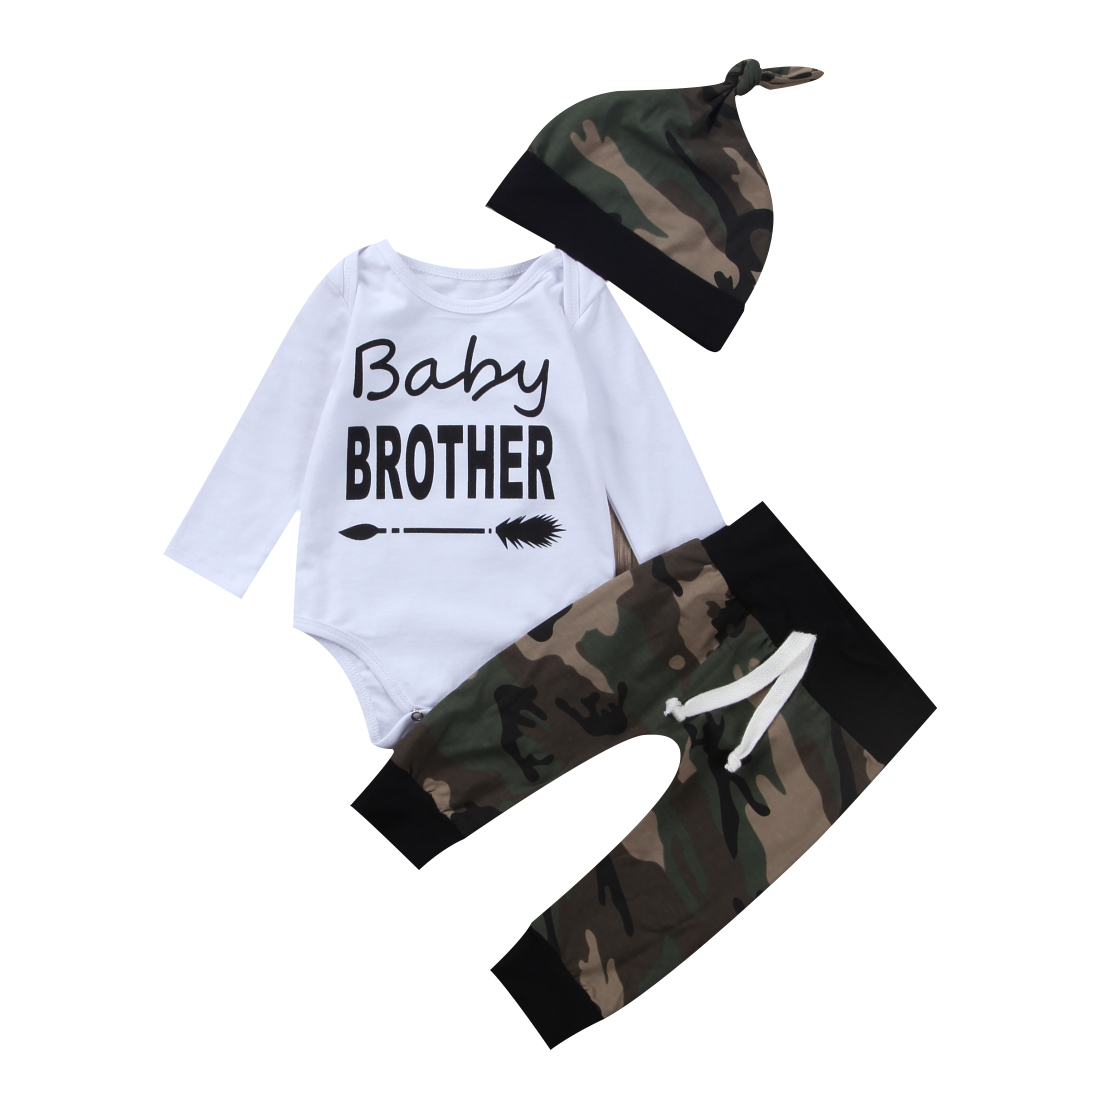 Pudcoco 3Pcs Toddler Baby Boys Summer Cotton Long Sleeve O-Neck Bodysuit Romper Camo Pants Outfits Set 0-18 Months Helen115